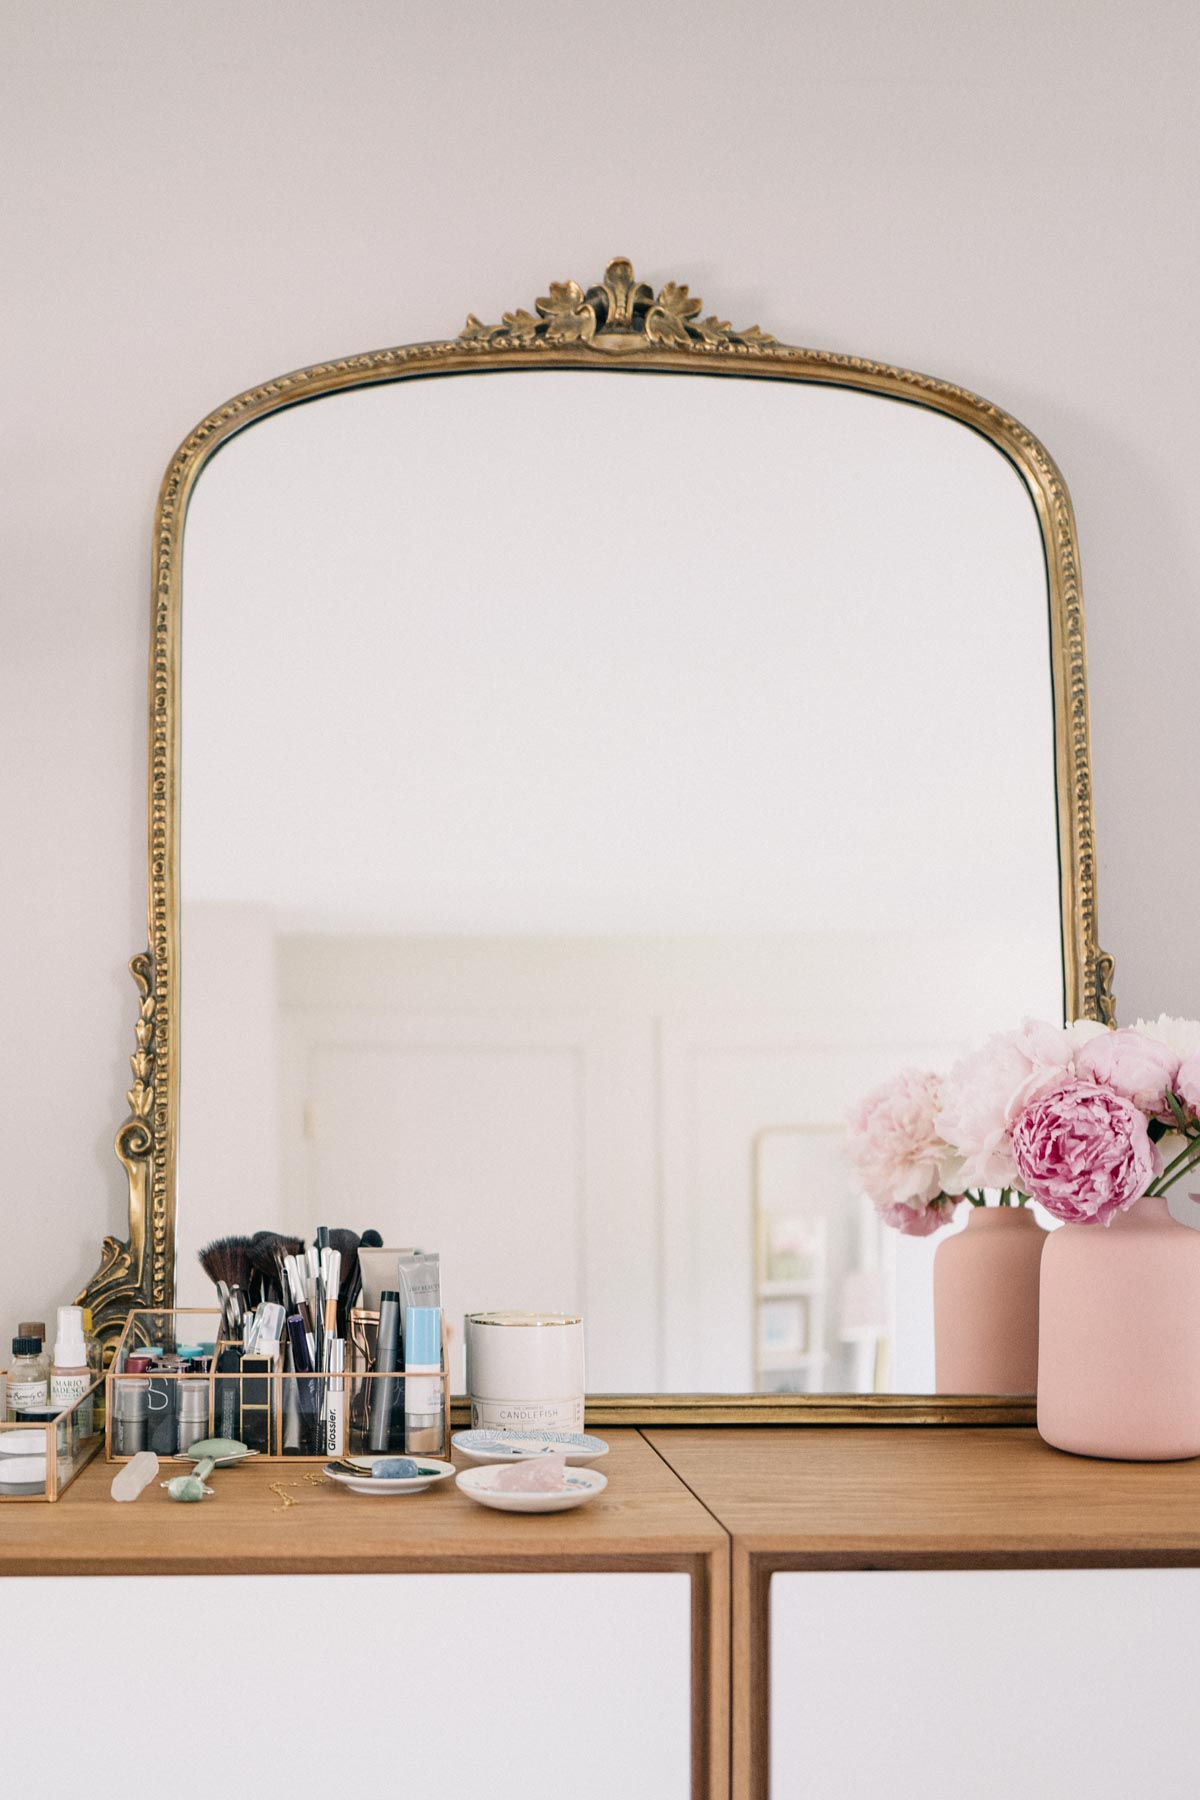 Jess Ann Kirby styles the gleaming primrose mirror from Anthropologie on top of Rove Concepts vanities